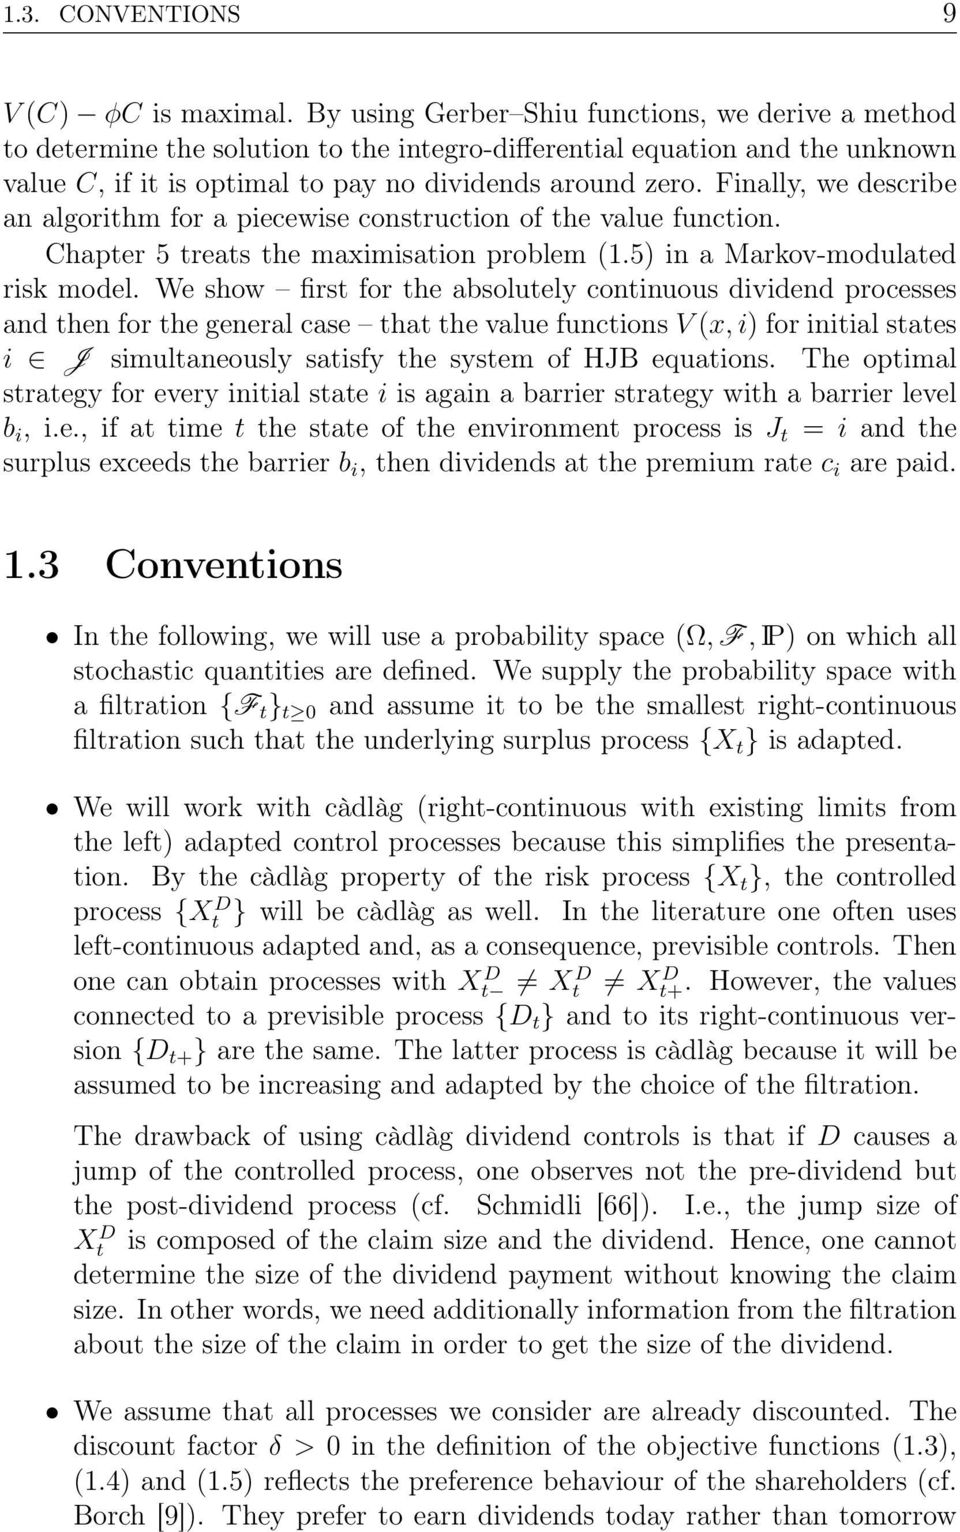 Finally, we describe an algorithm for a piecewise construction of the value function. Chapter 5 treats the maximisation problem (1.5) in a Markov-modulated risk model.